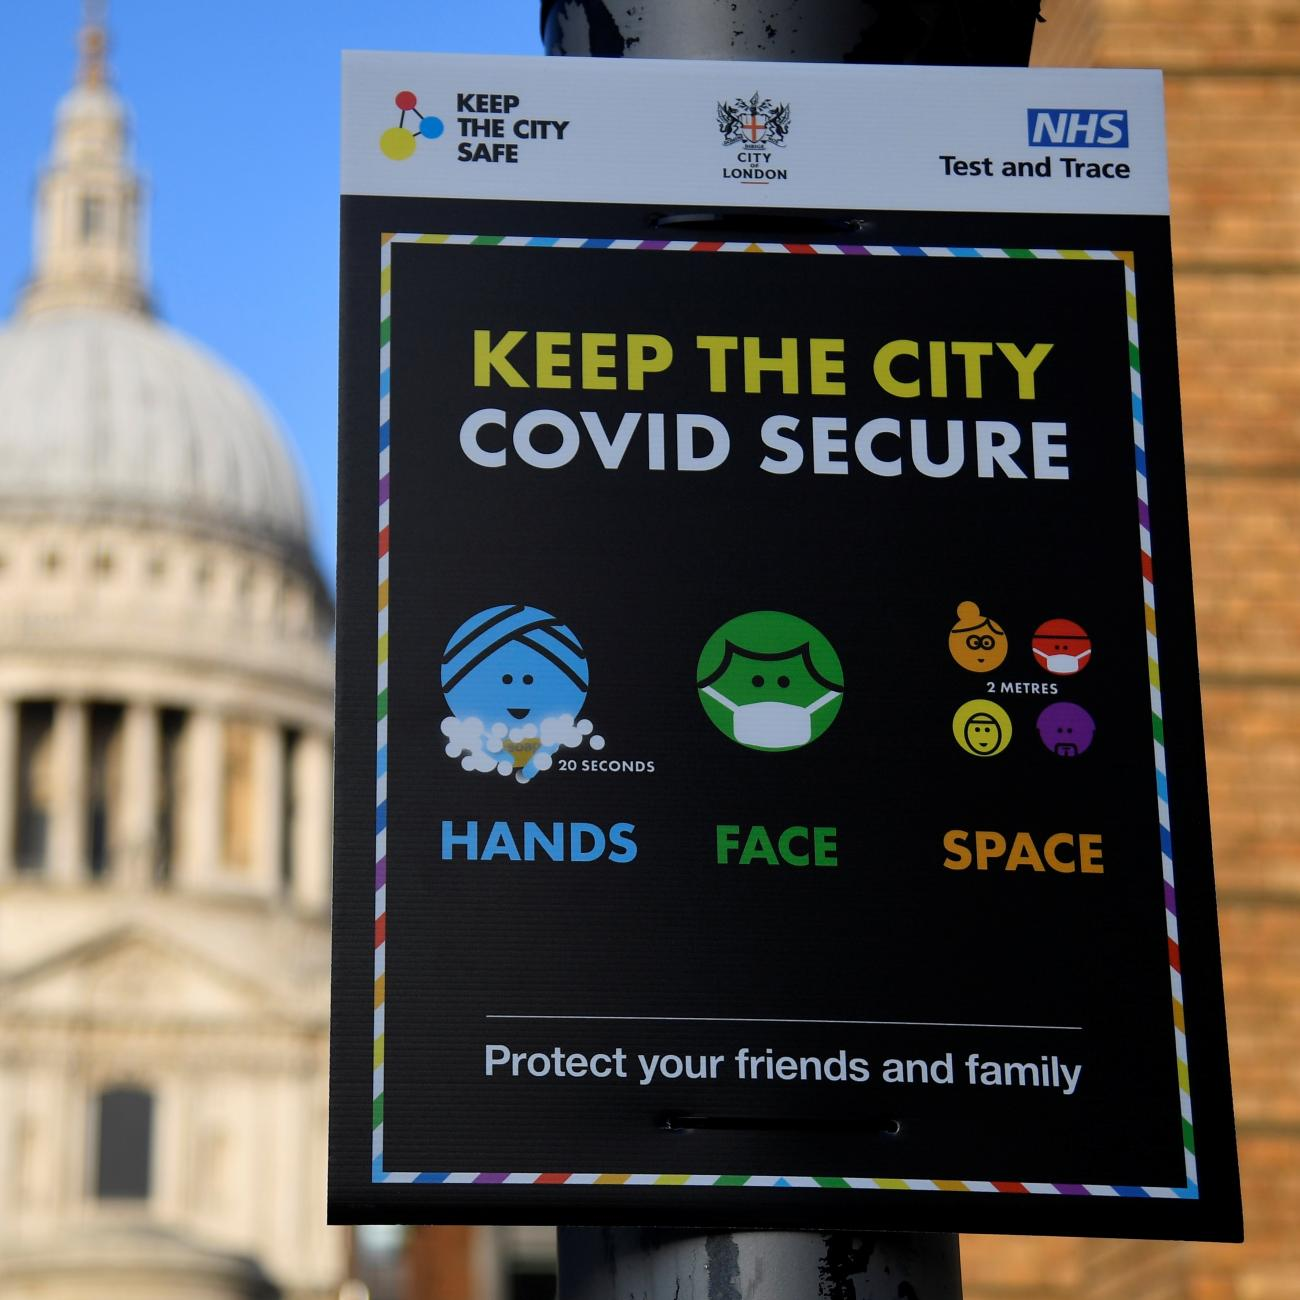 A public health information sign is seen with St. Paul's Cathedral seen behind amidst a lockdown during the spread of the coronavirus disease pandemic, London, Britain, January 7, 2021.